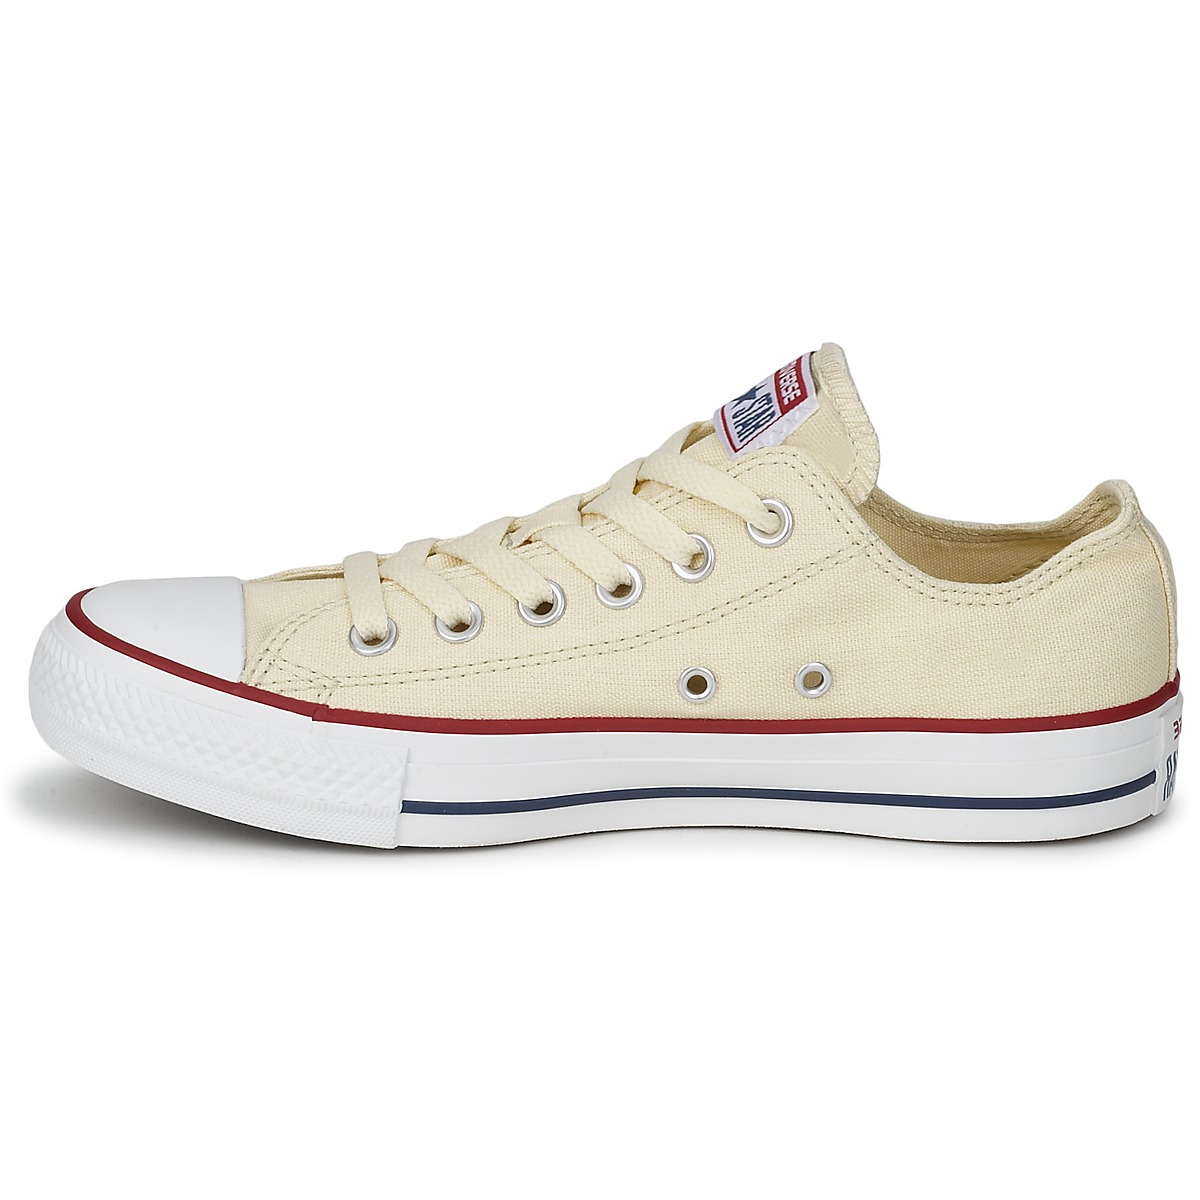 bbfb5b9cdf55 durable modeling Converse ALL STAR CORE OX White Beige Shoes Low top  trainers